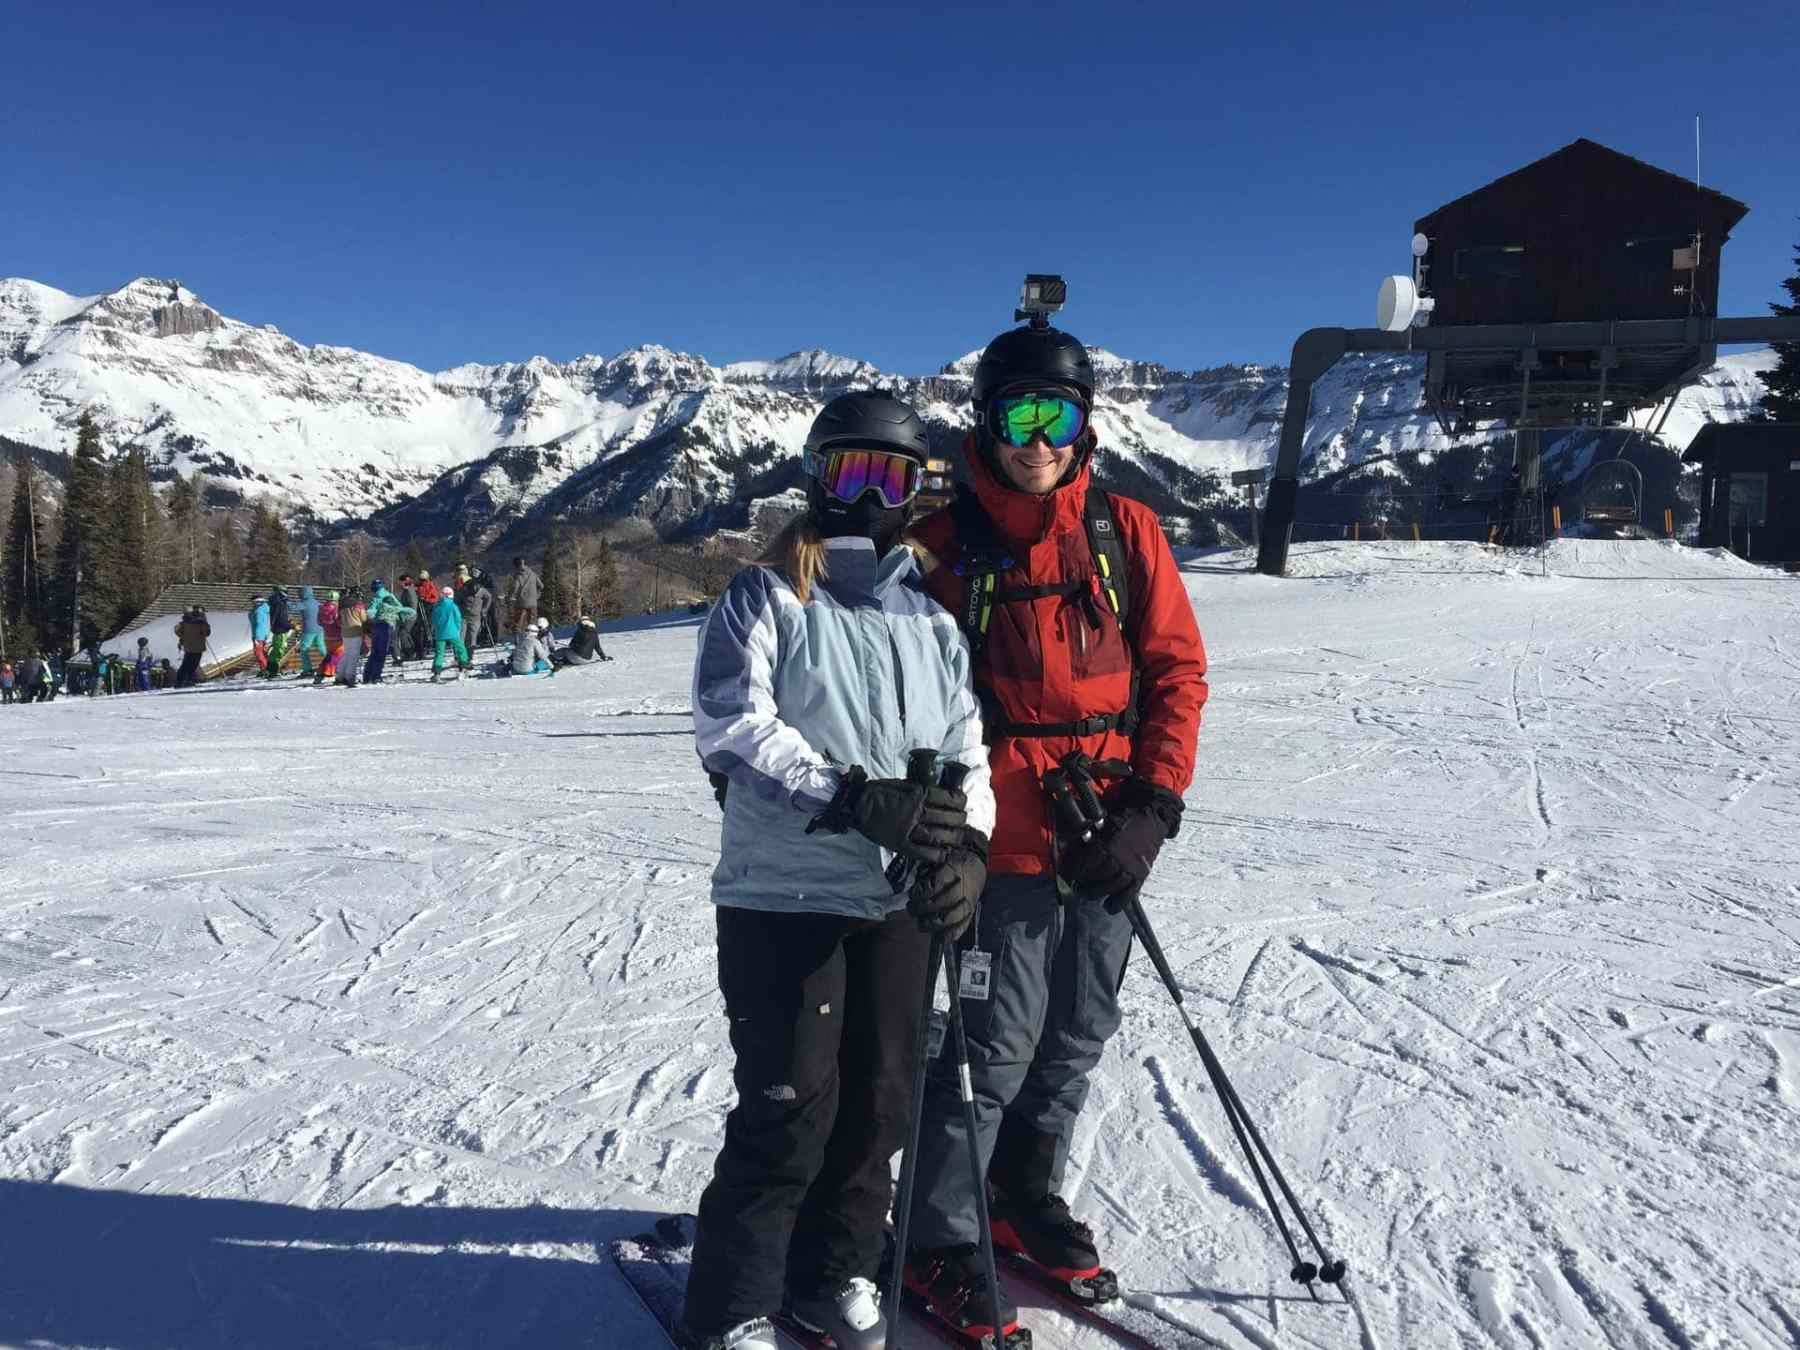 Skiing Telluride for the 1st Time